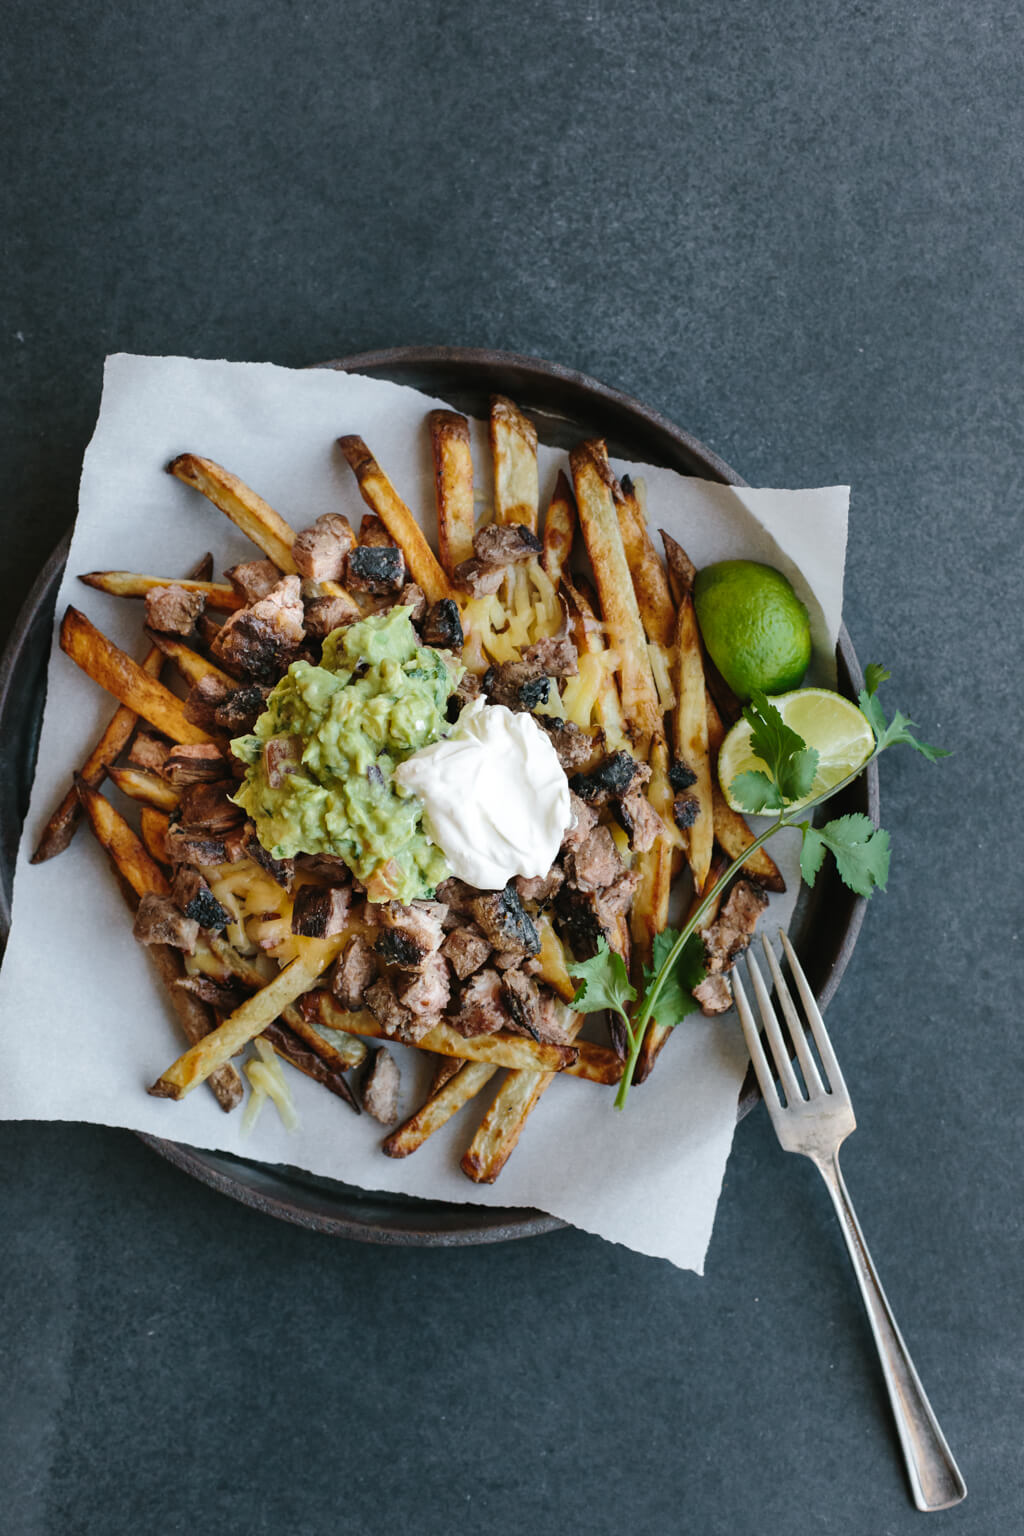 Carne asada fries are a San Diego classic and naturally gluten-free. A delicious snack or appetizer!